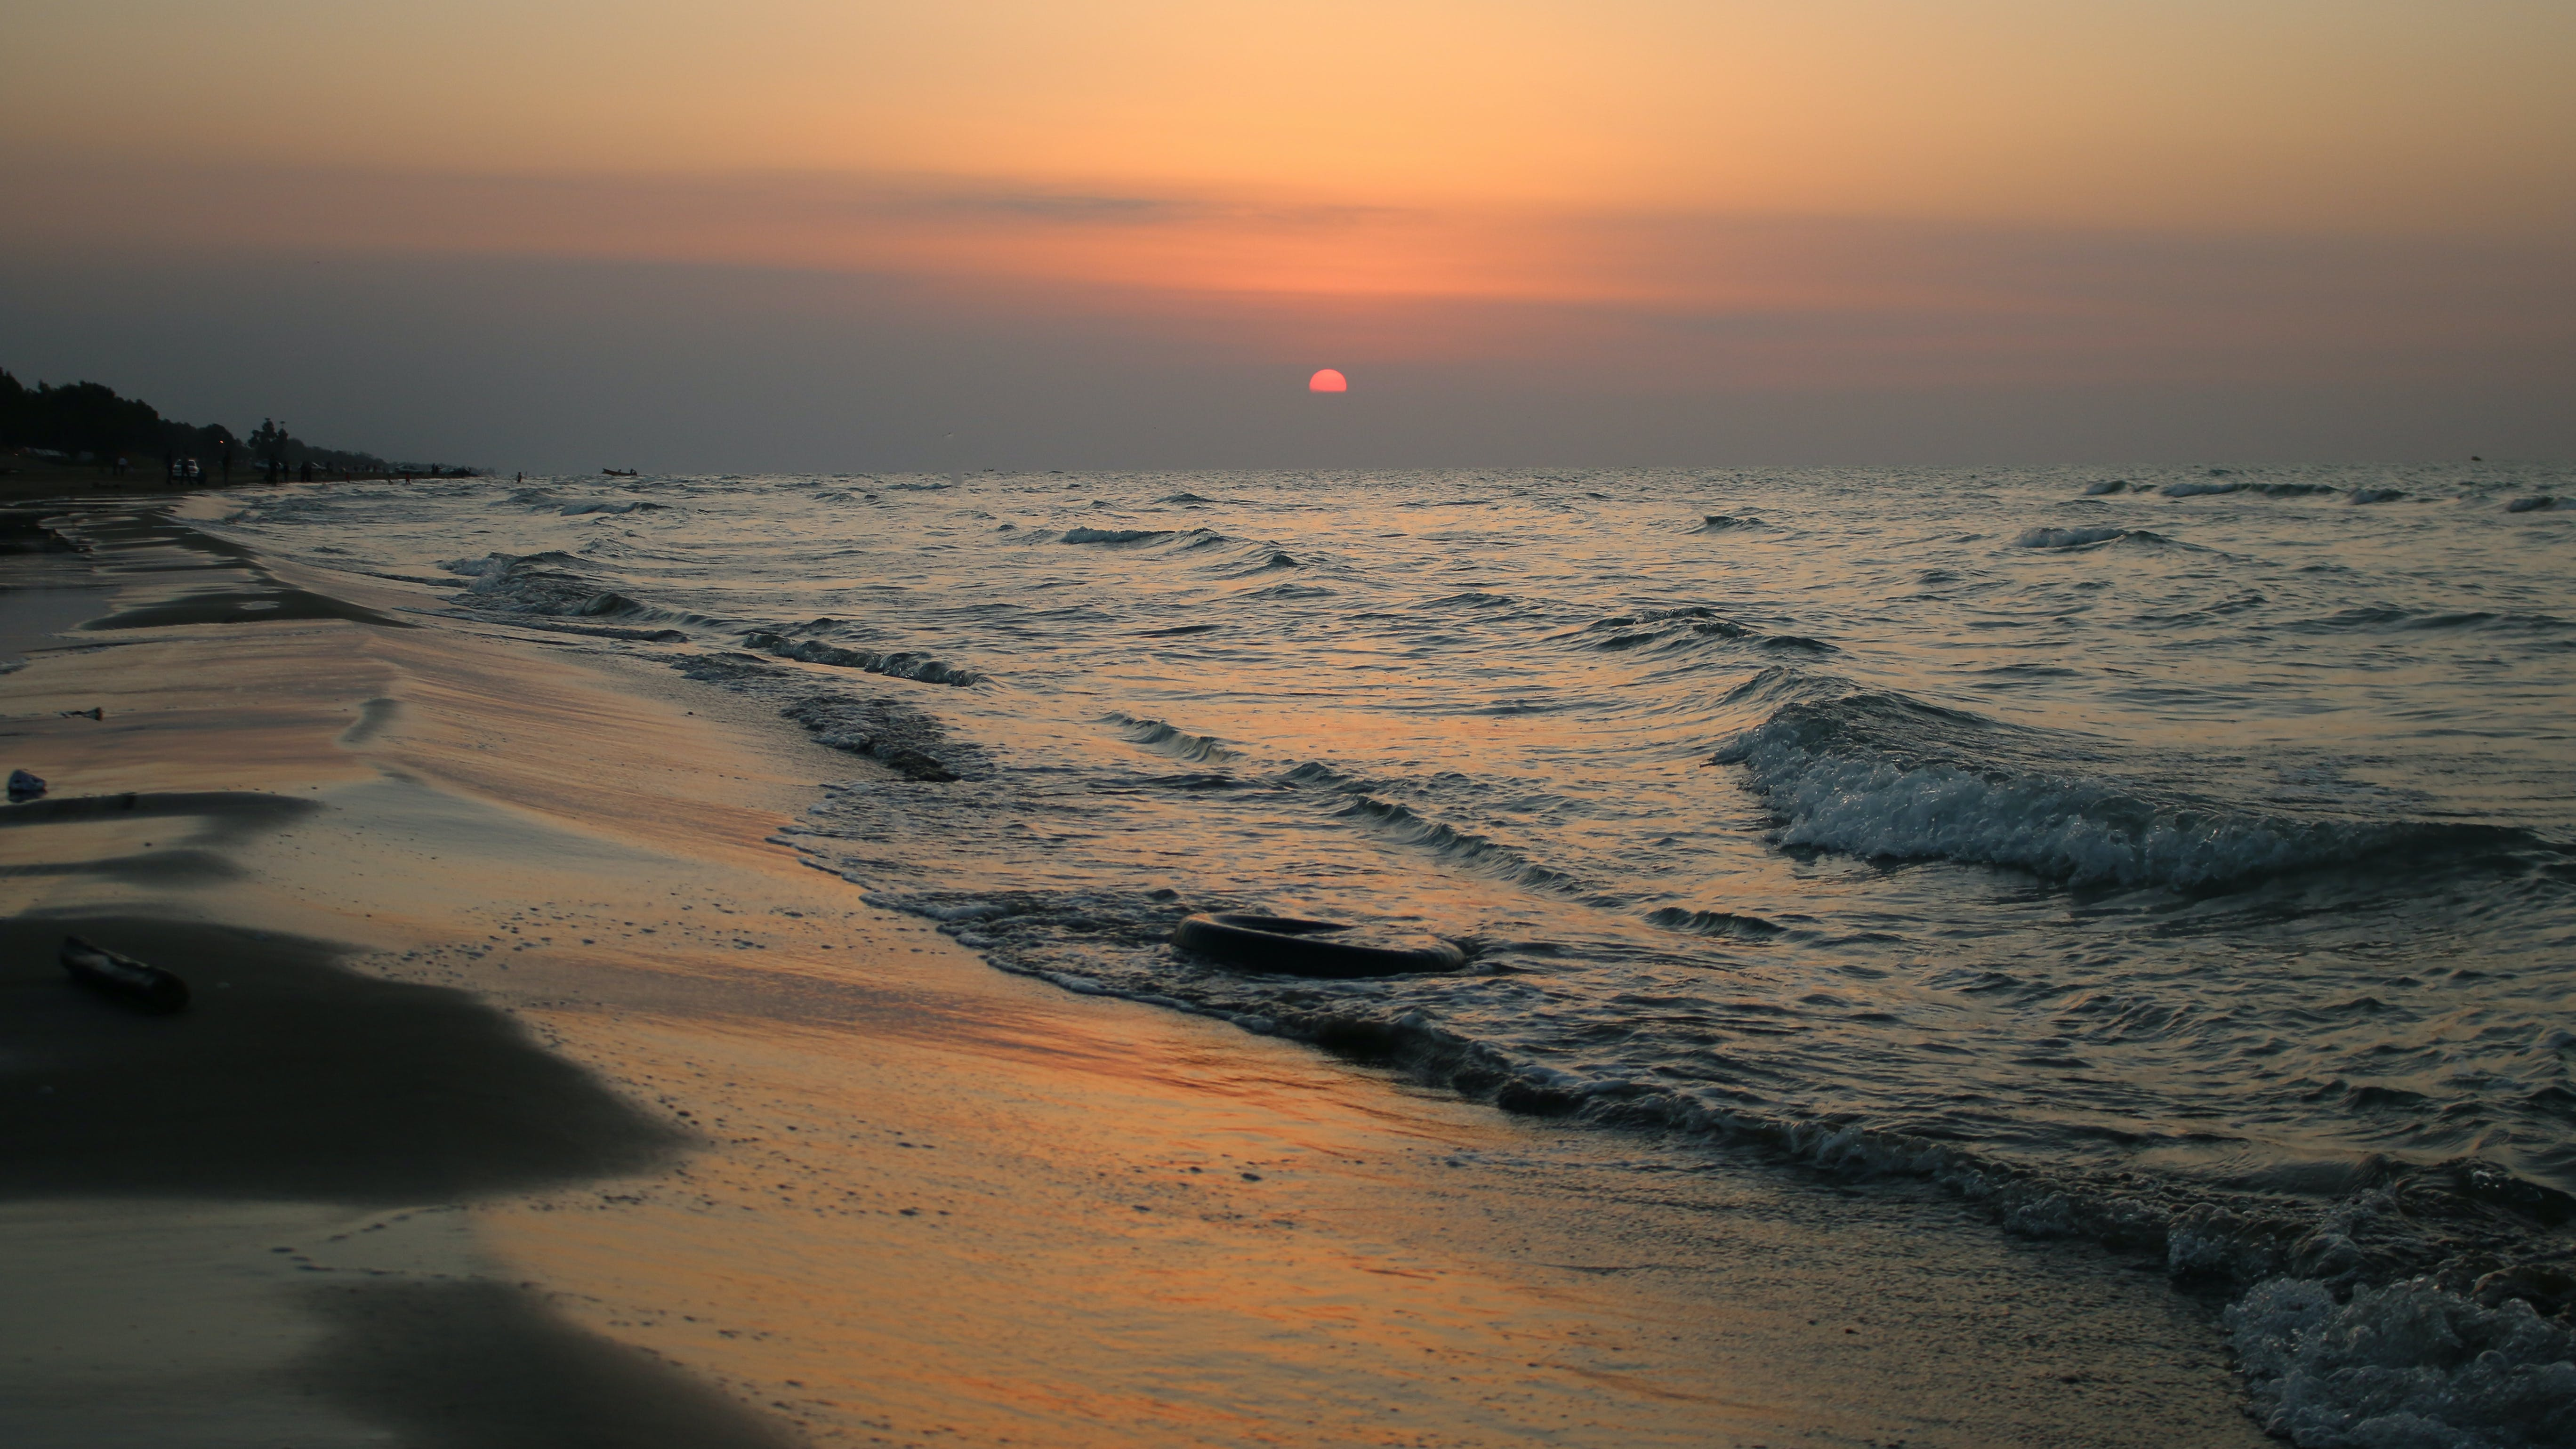 View of Beach at Sunset